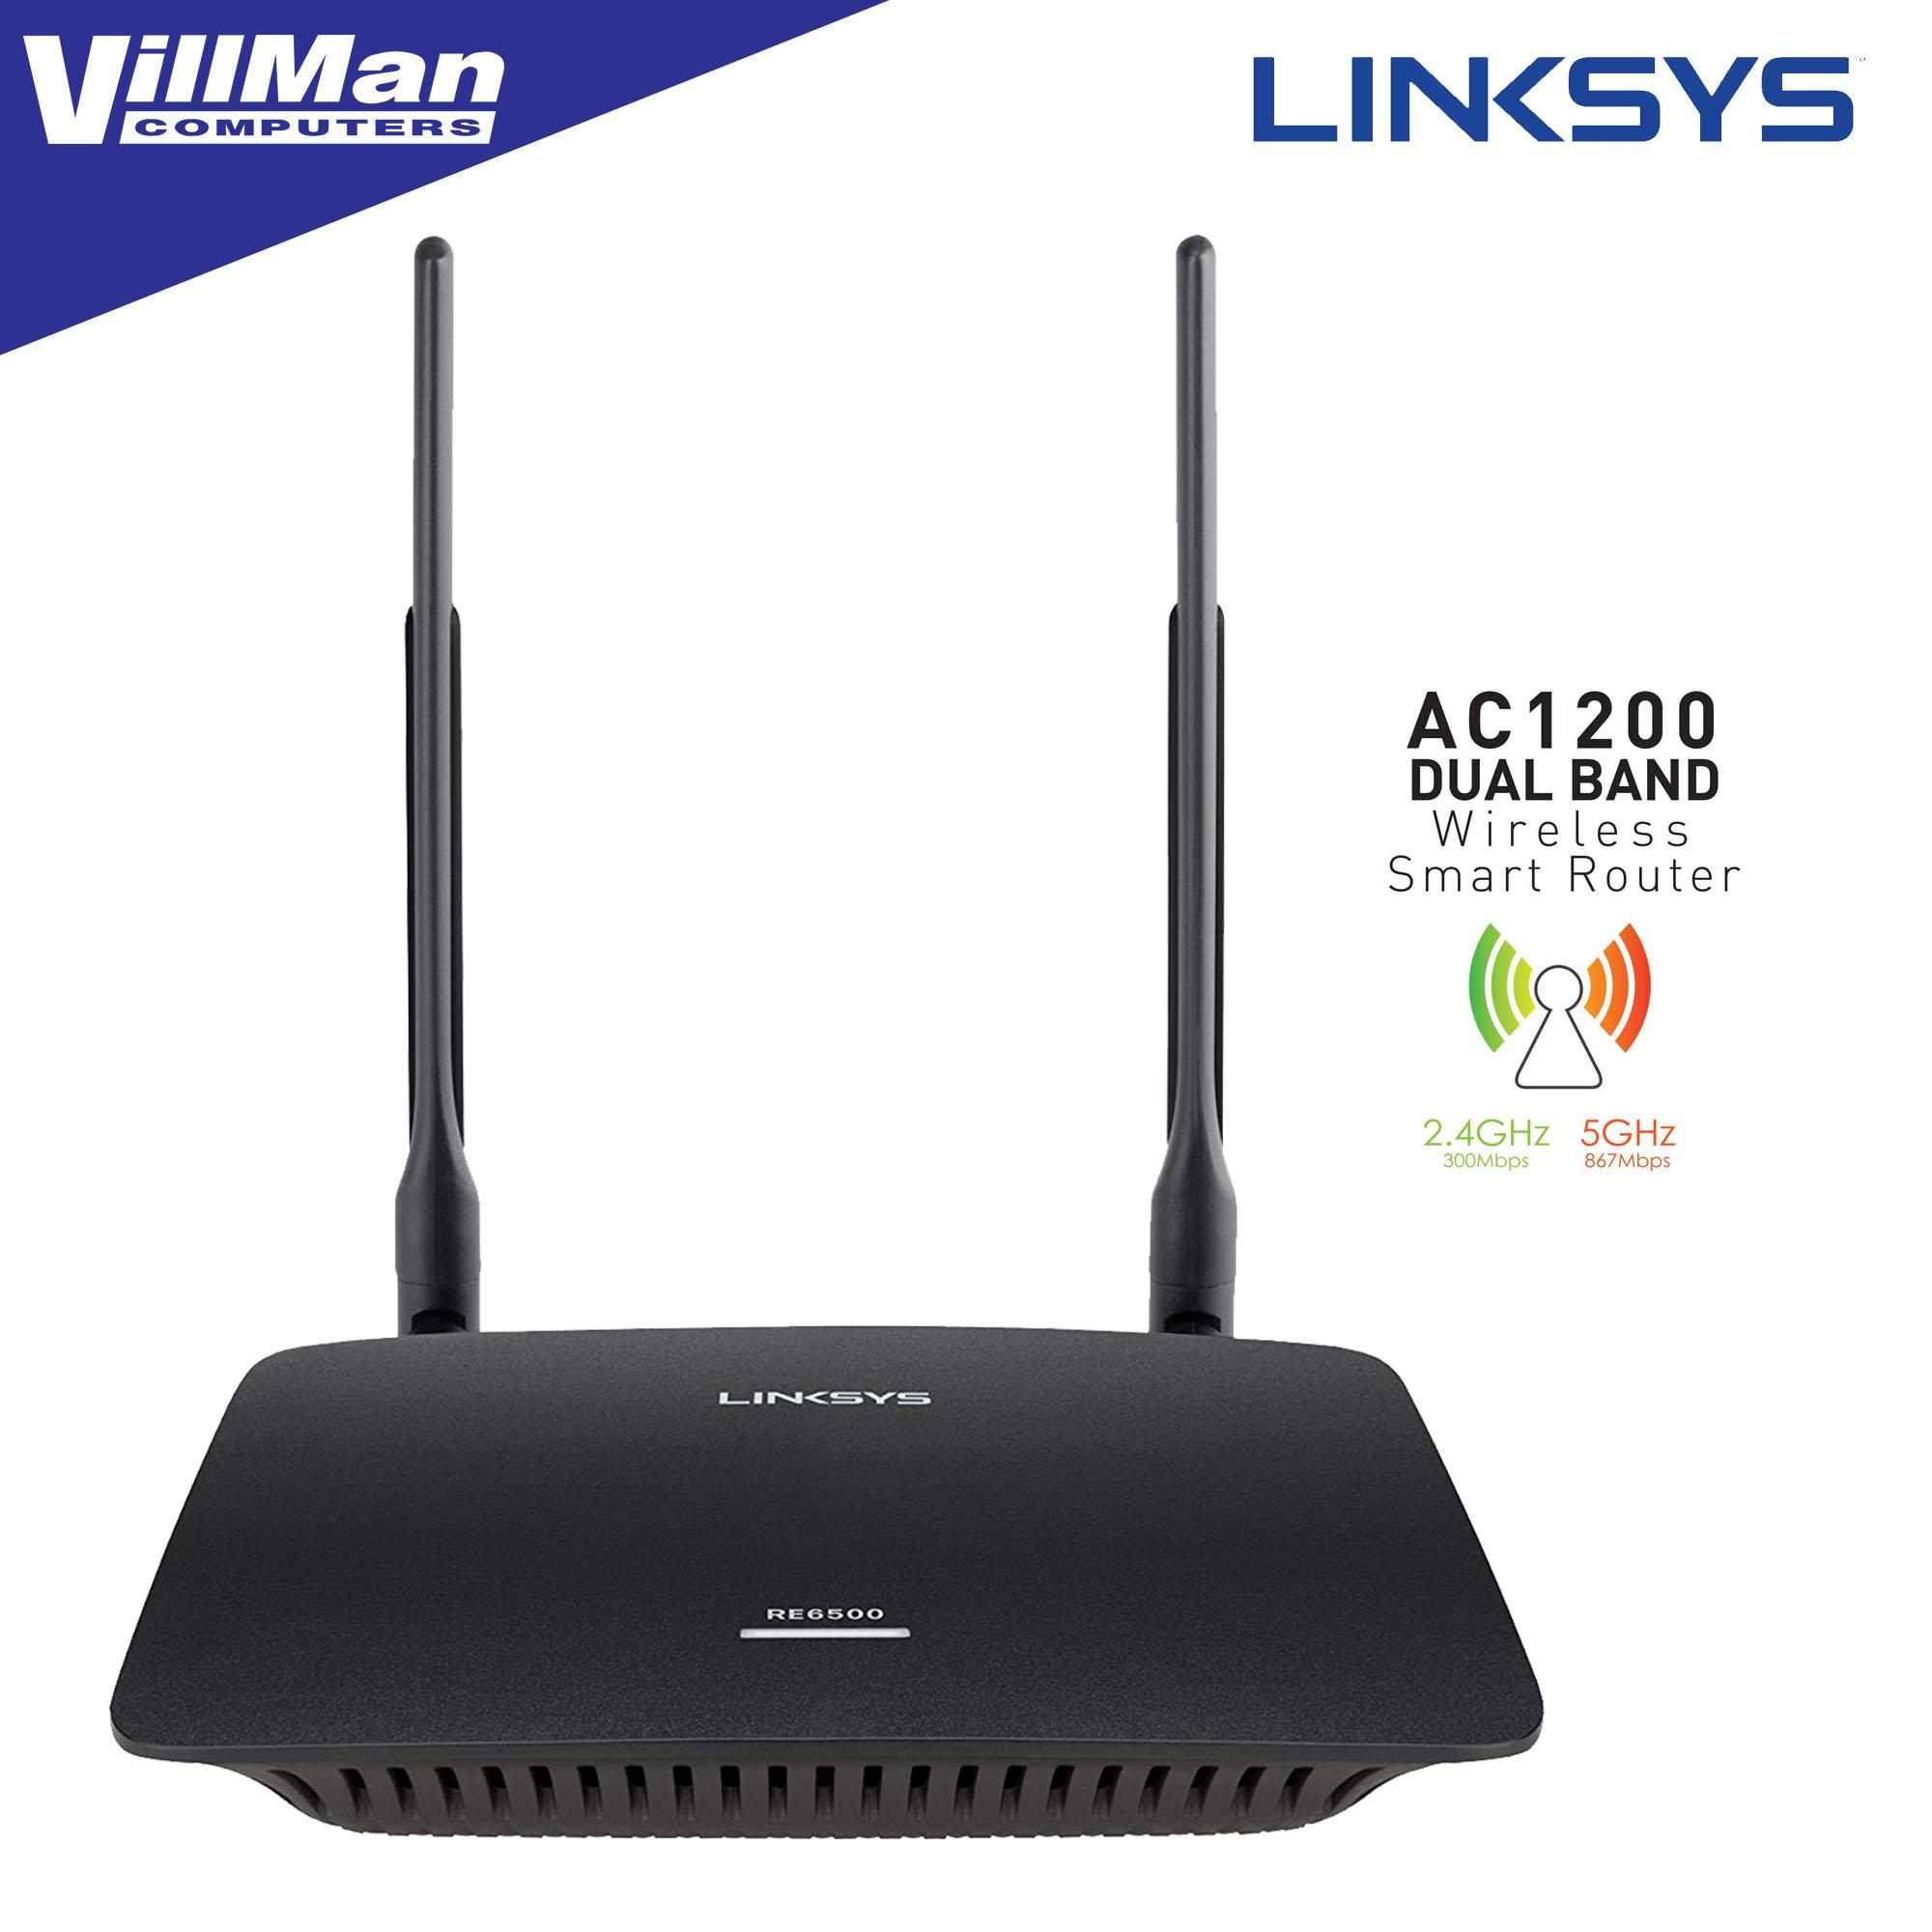 Linksys RE6500HG, Dual Band Wireless AC Range Extender 2 4 GHz and 5 GHz